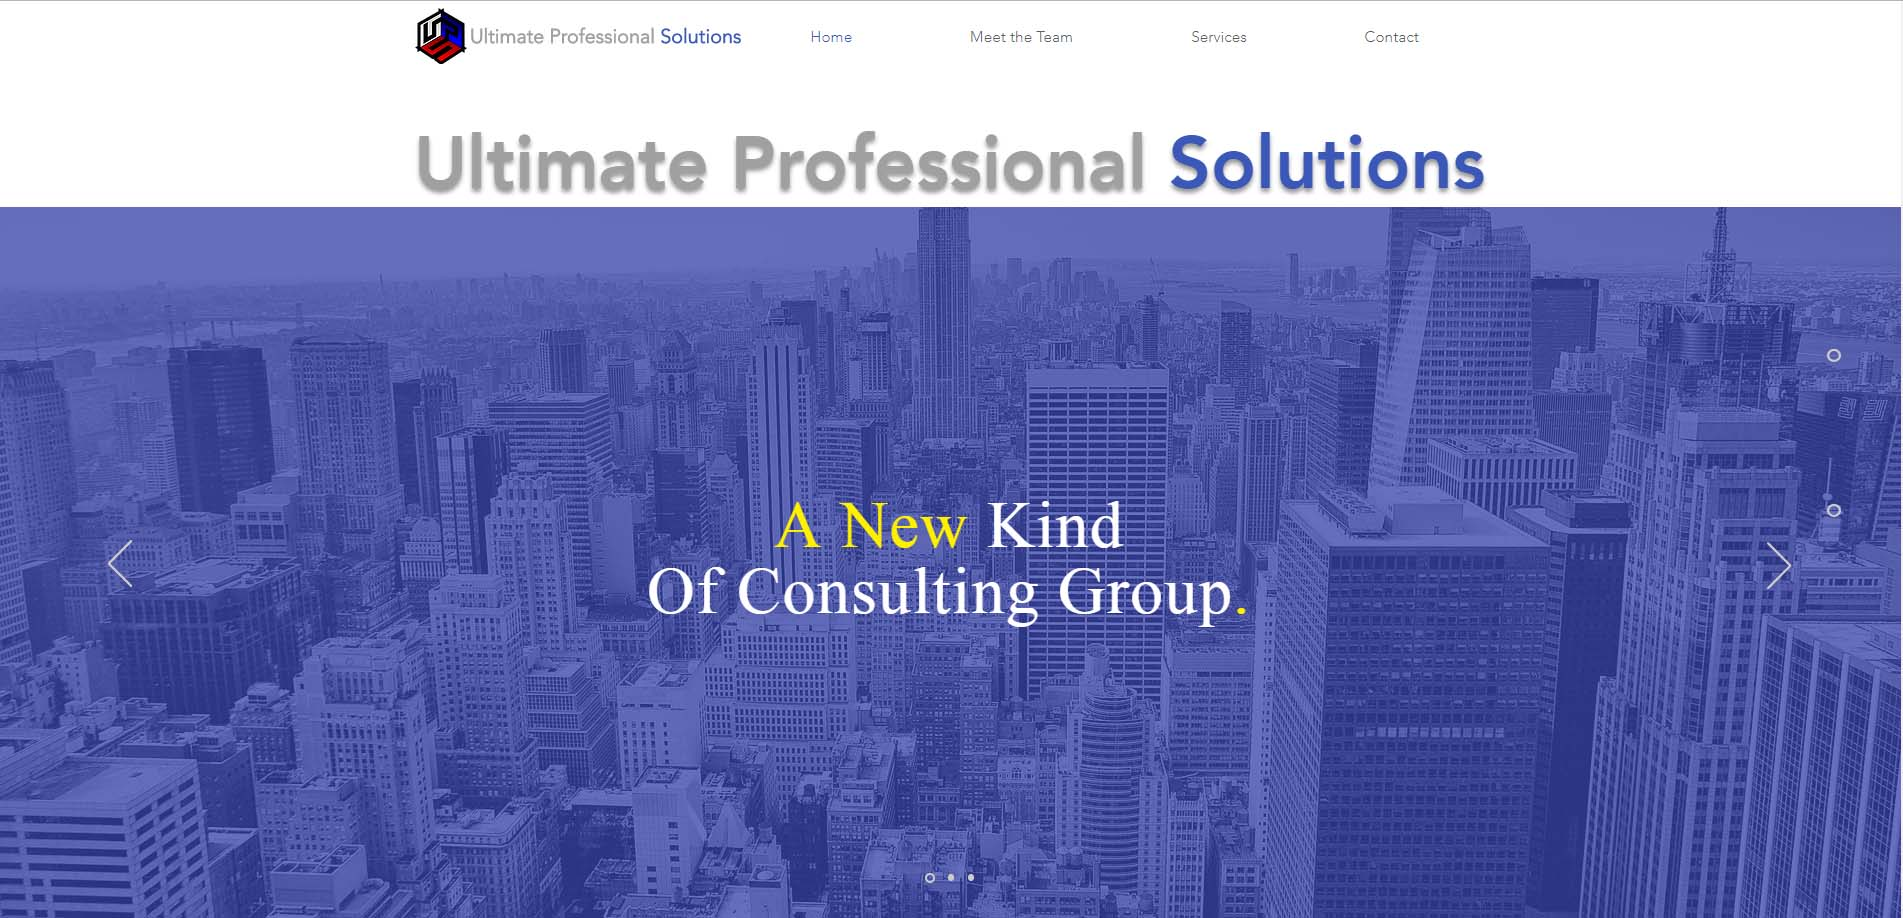 Ultimate Professional Solutions